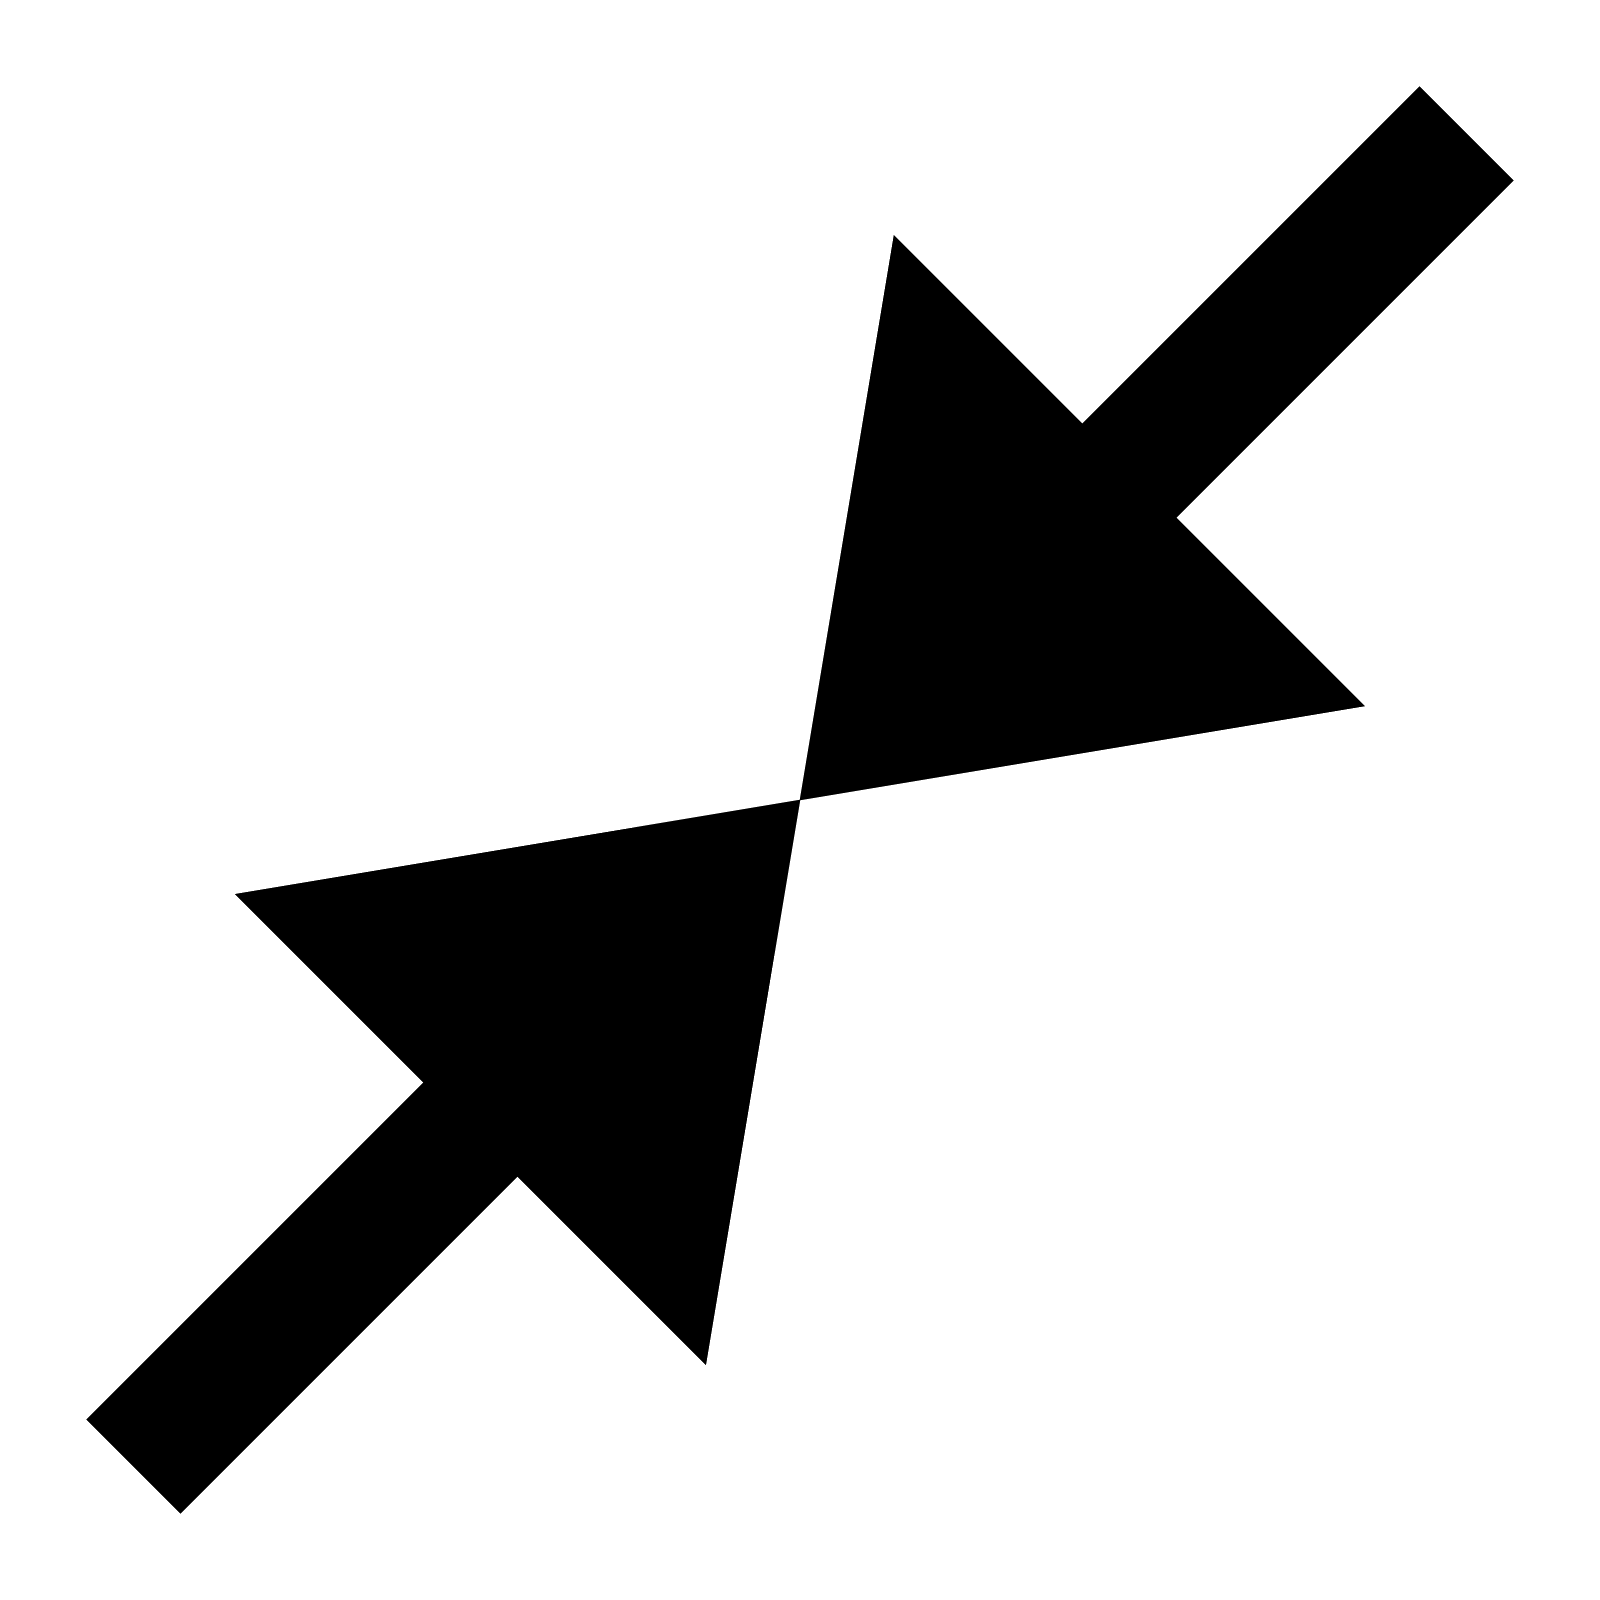 Png shrink. Compress icon